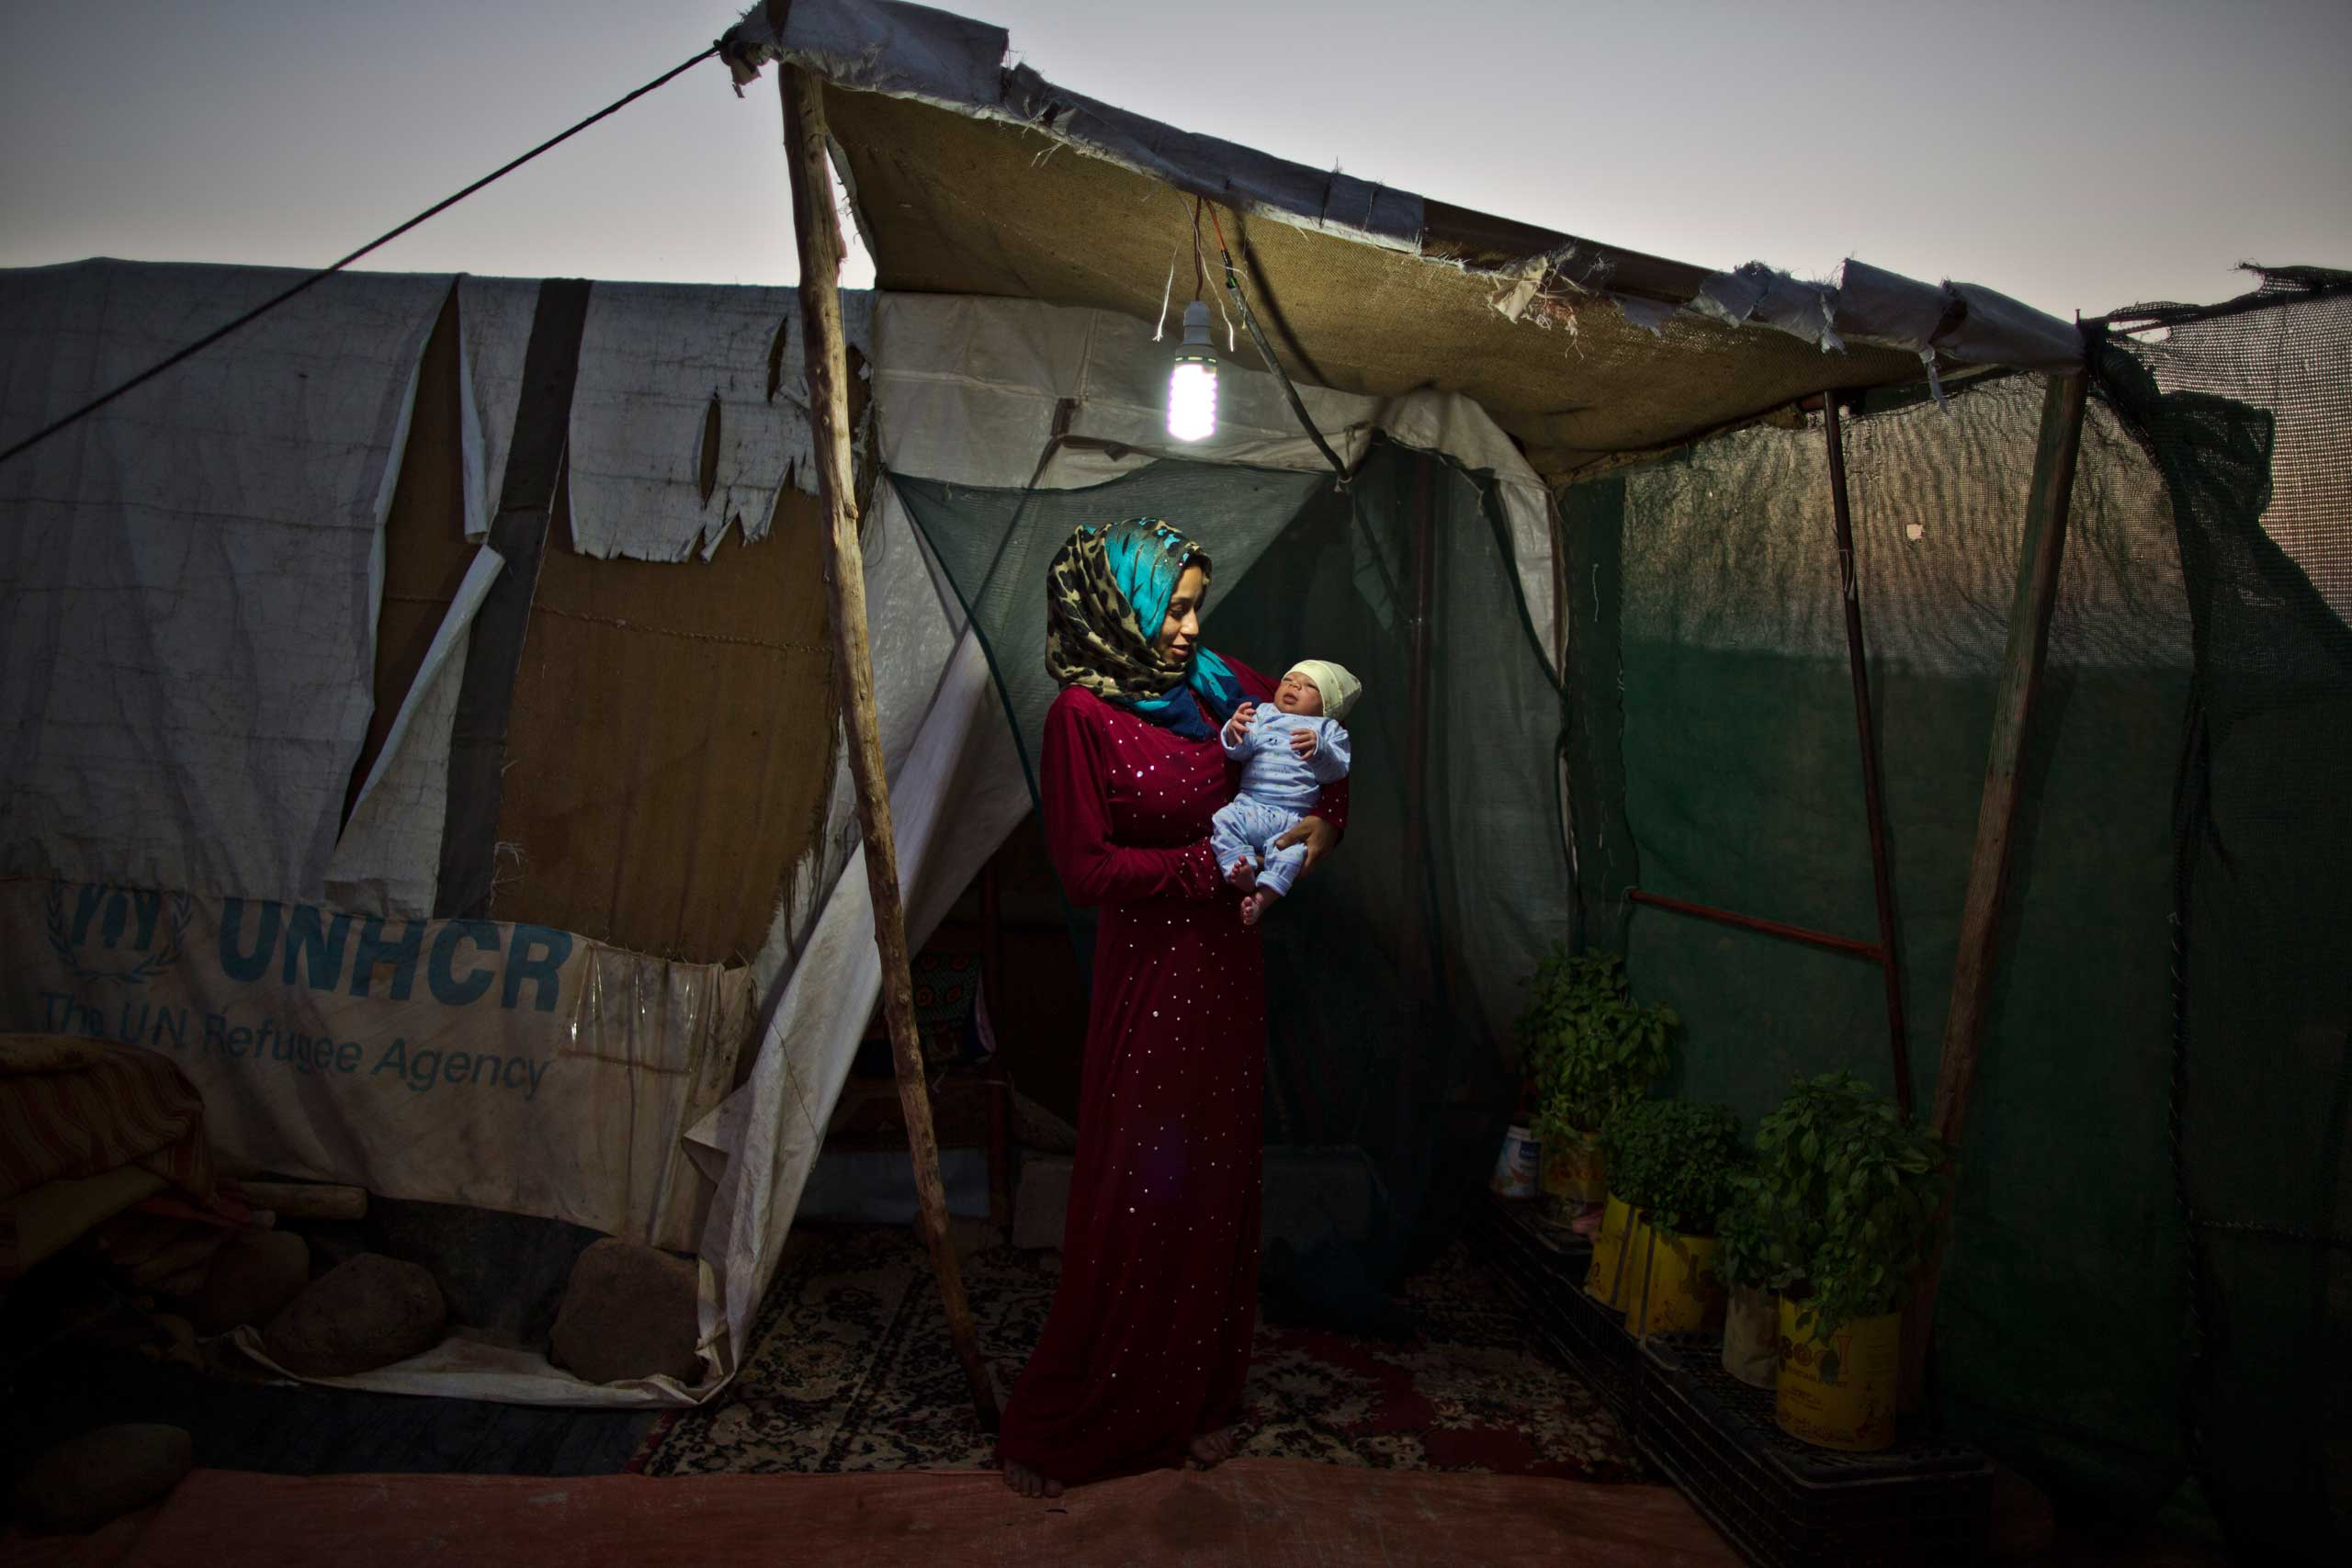 After delivering her first son safely despite fears of medical complications, Huda Alsayil says she now feels complete for the first time in months.  Holding him feels like the best gift I could be granted.  Huda Alsayil, 20, holds her week-old son Mezwid on Aug. 1, 2015.